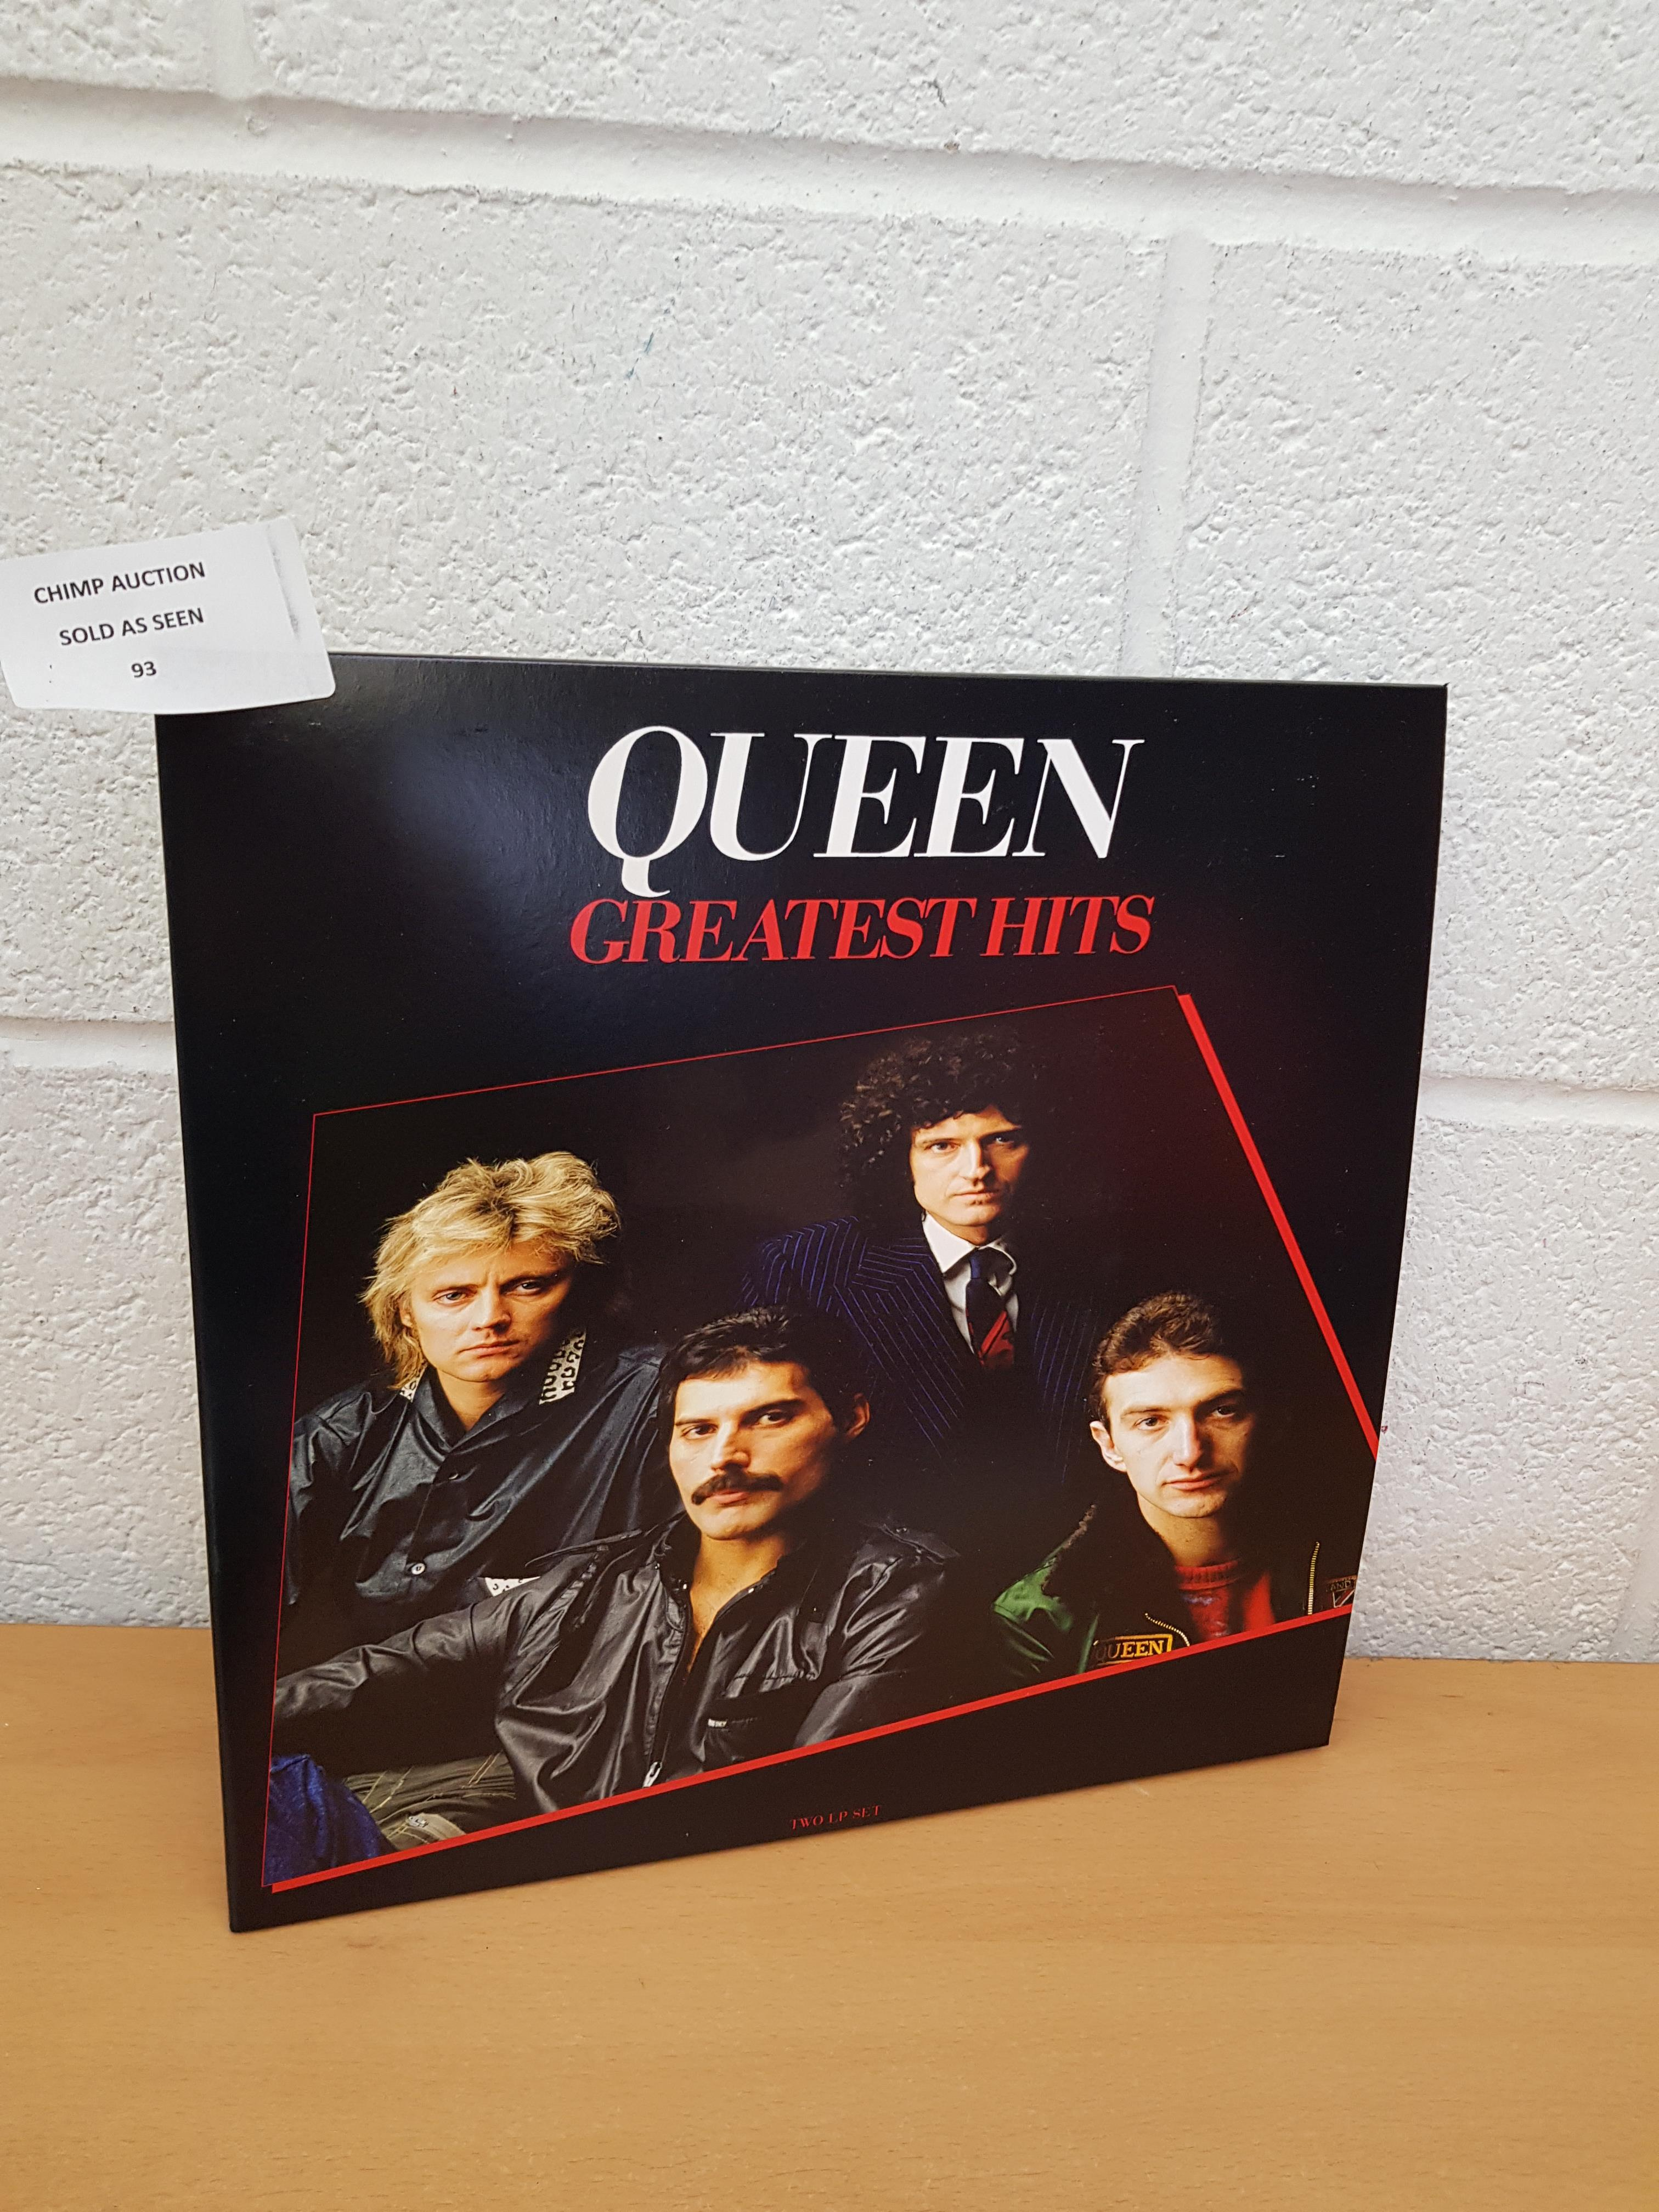 Lot 93 - Greatest Hits 1 Double Vinyl, Remastered By Queen